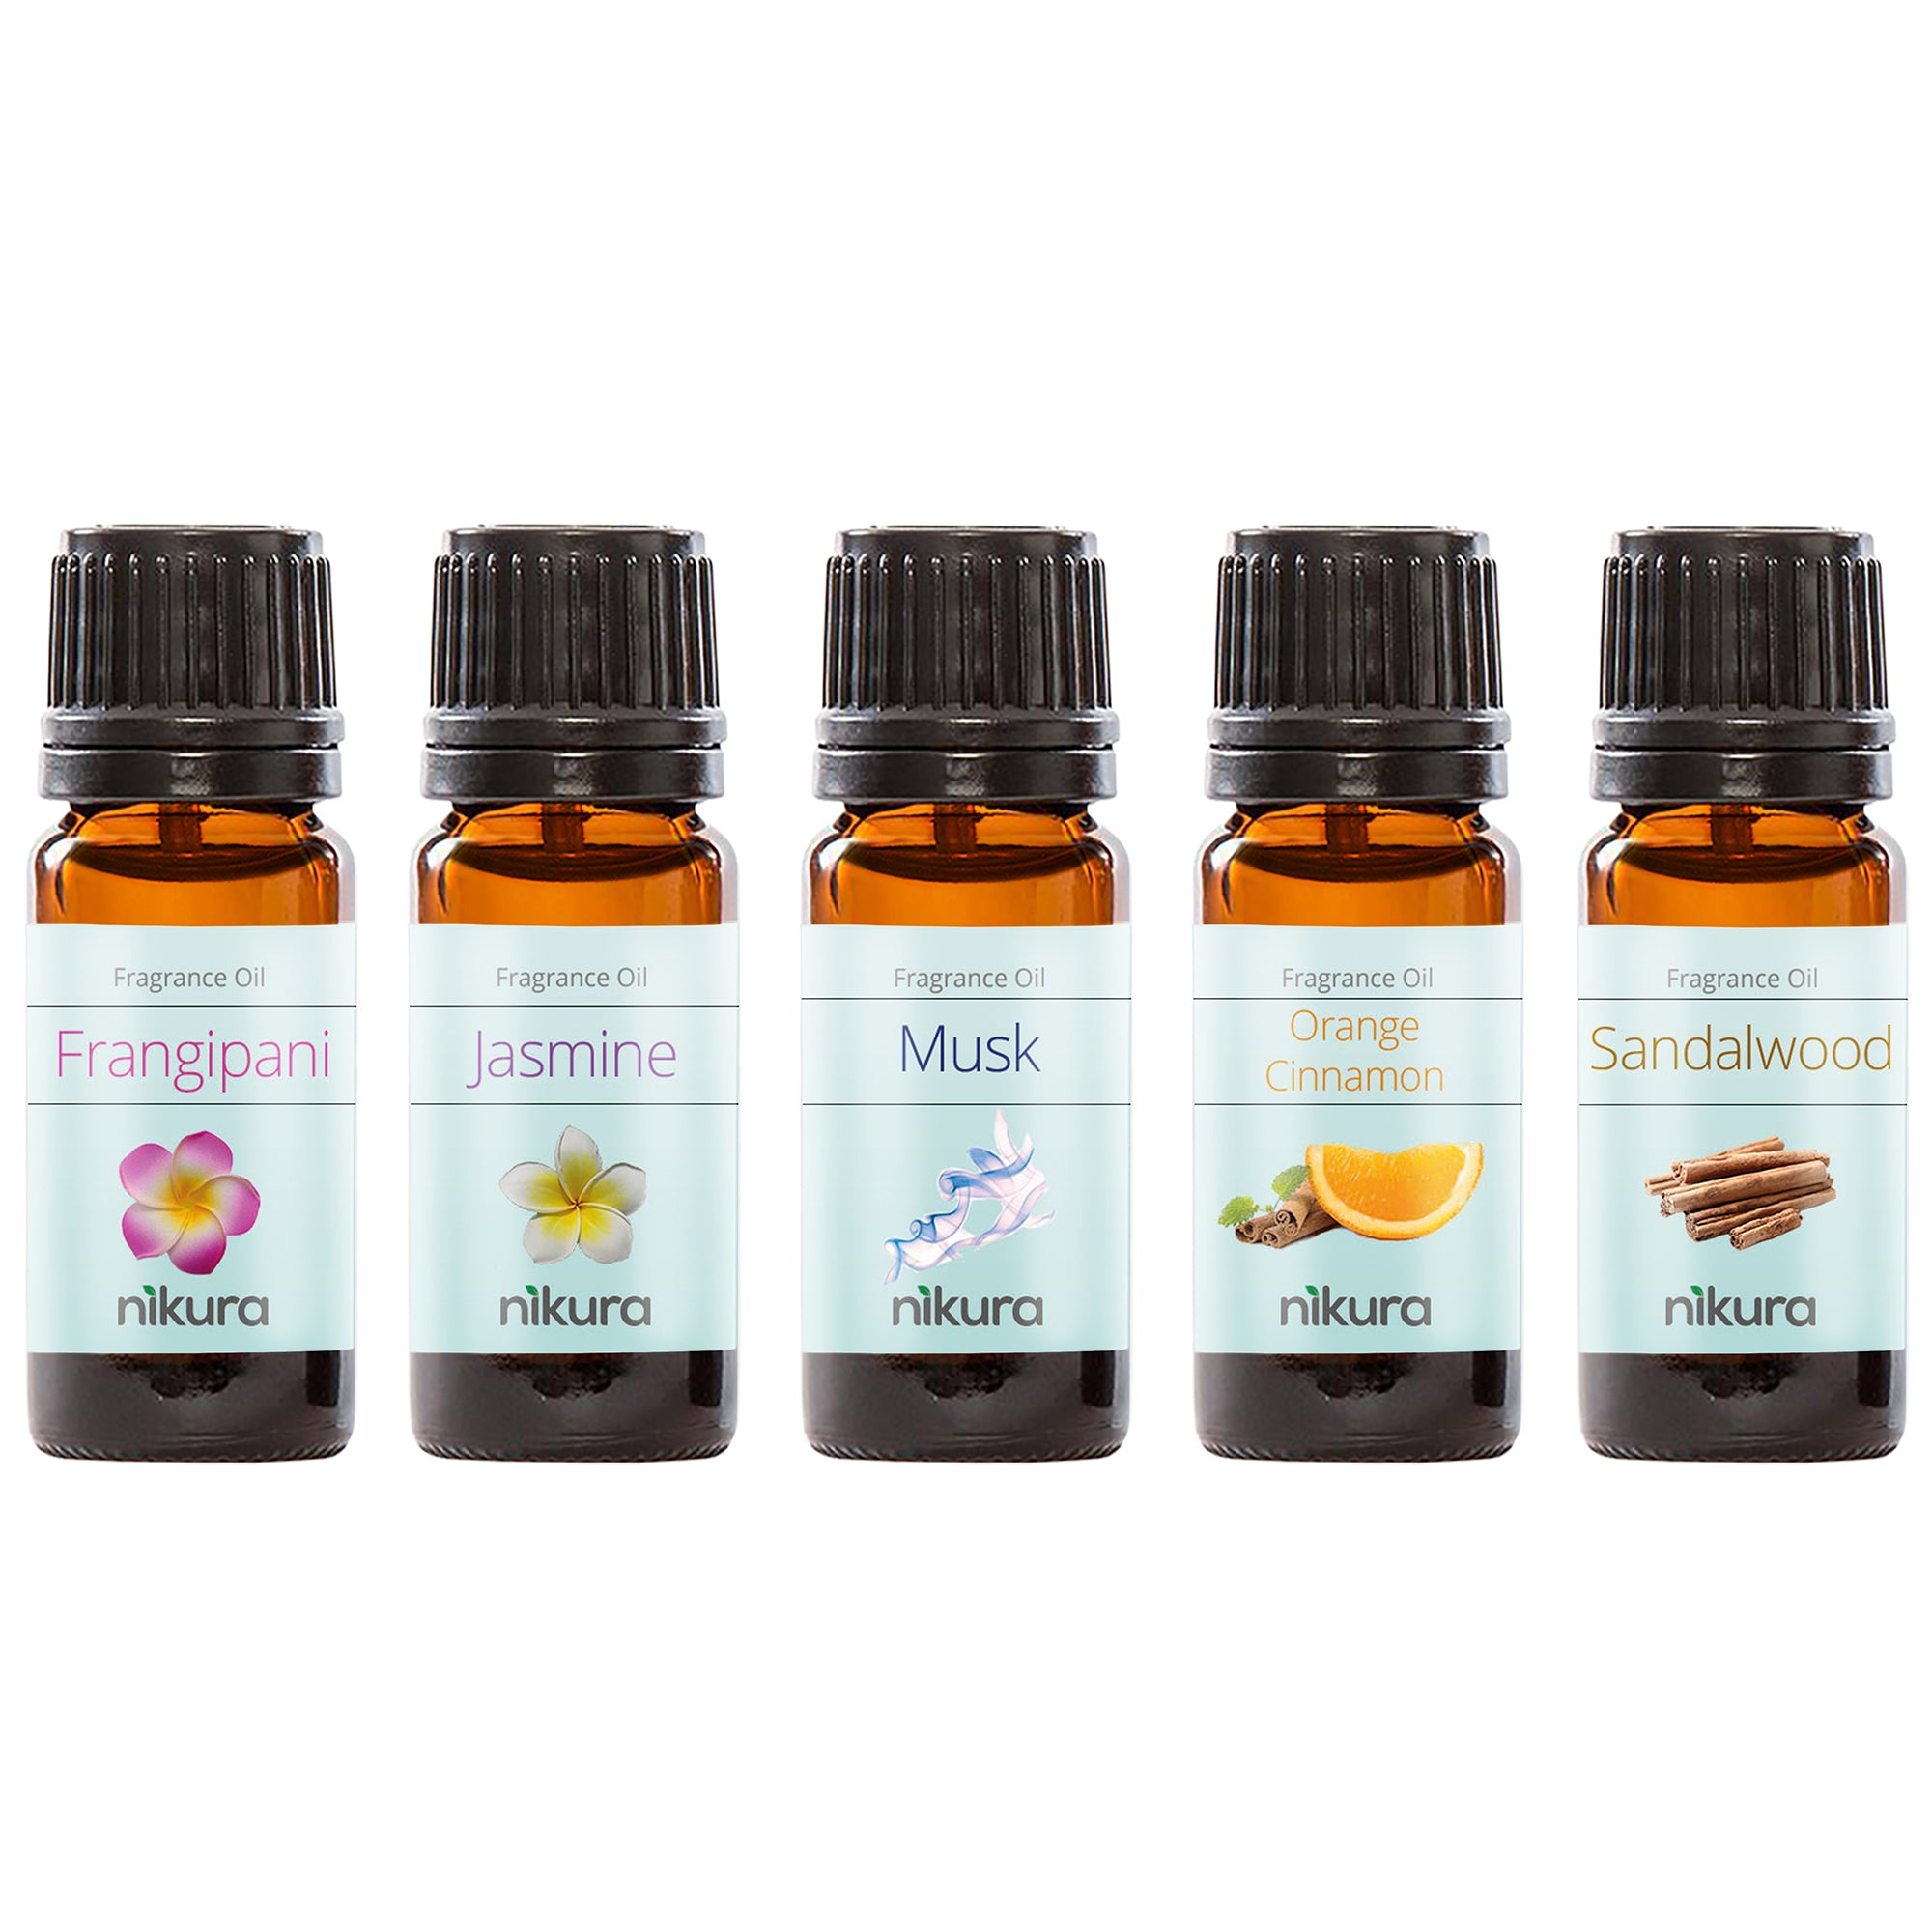 Best Sellers - Gift Set - 5 x 10ml Fragrance Oils